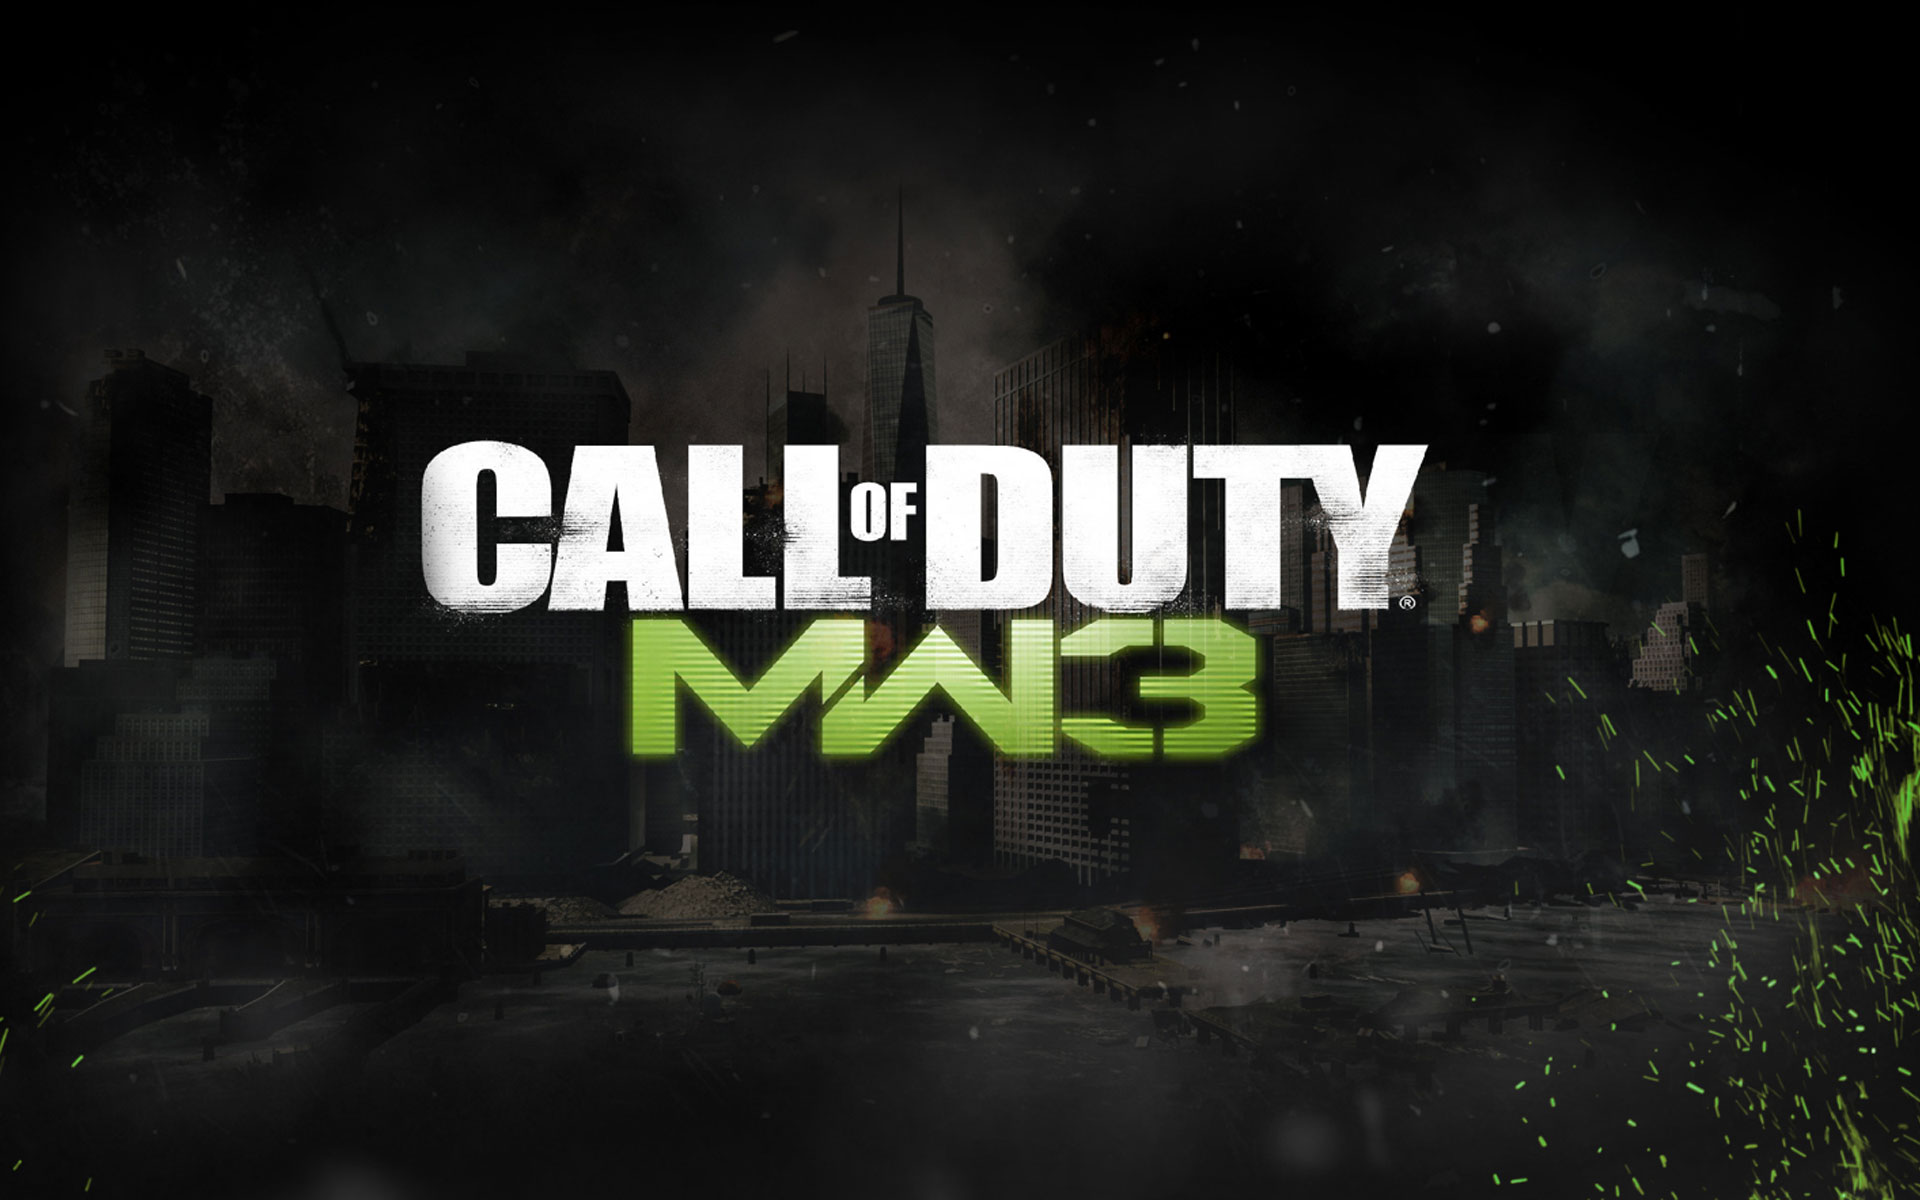 HD]Call of DutyModern Warfare 3 Wallpapers Risen Sources 1920x1200